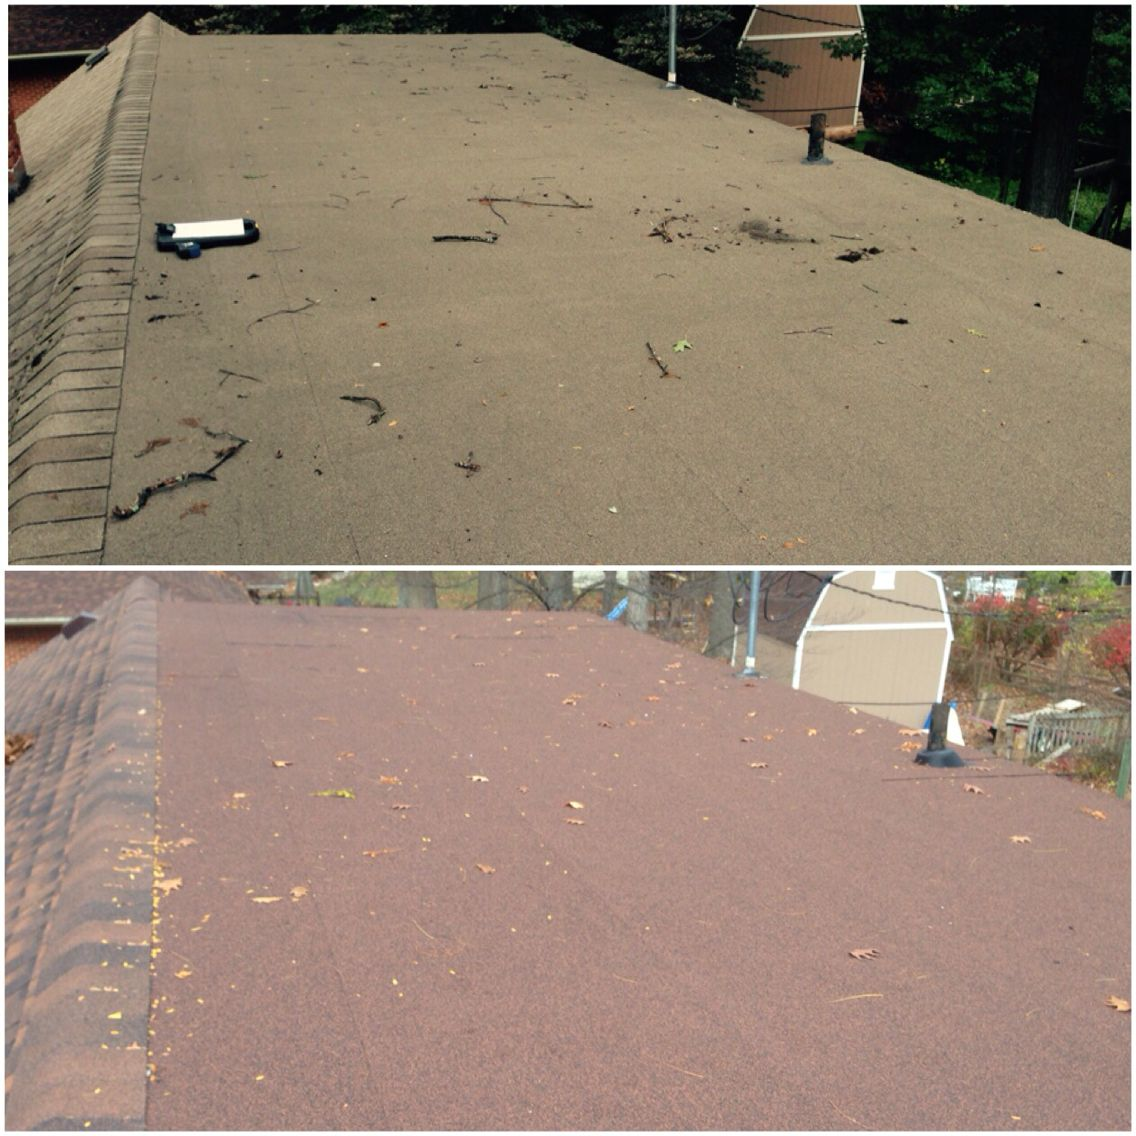 Gaf S Liberty Rolled Roofing Product Is Specifically Designed For Low Slope Roofs Roll Roofing Roofing Roof